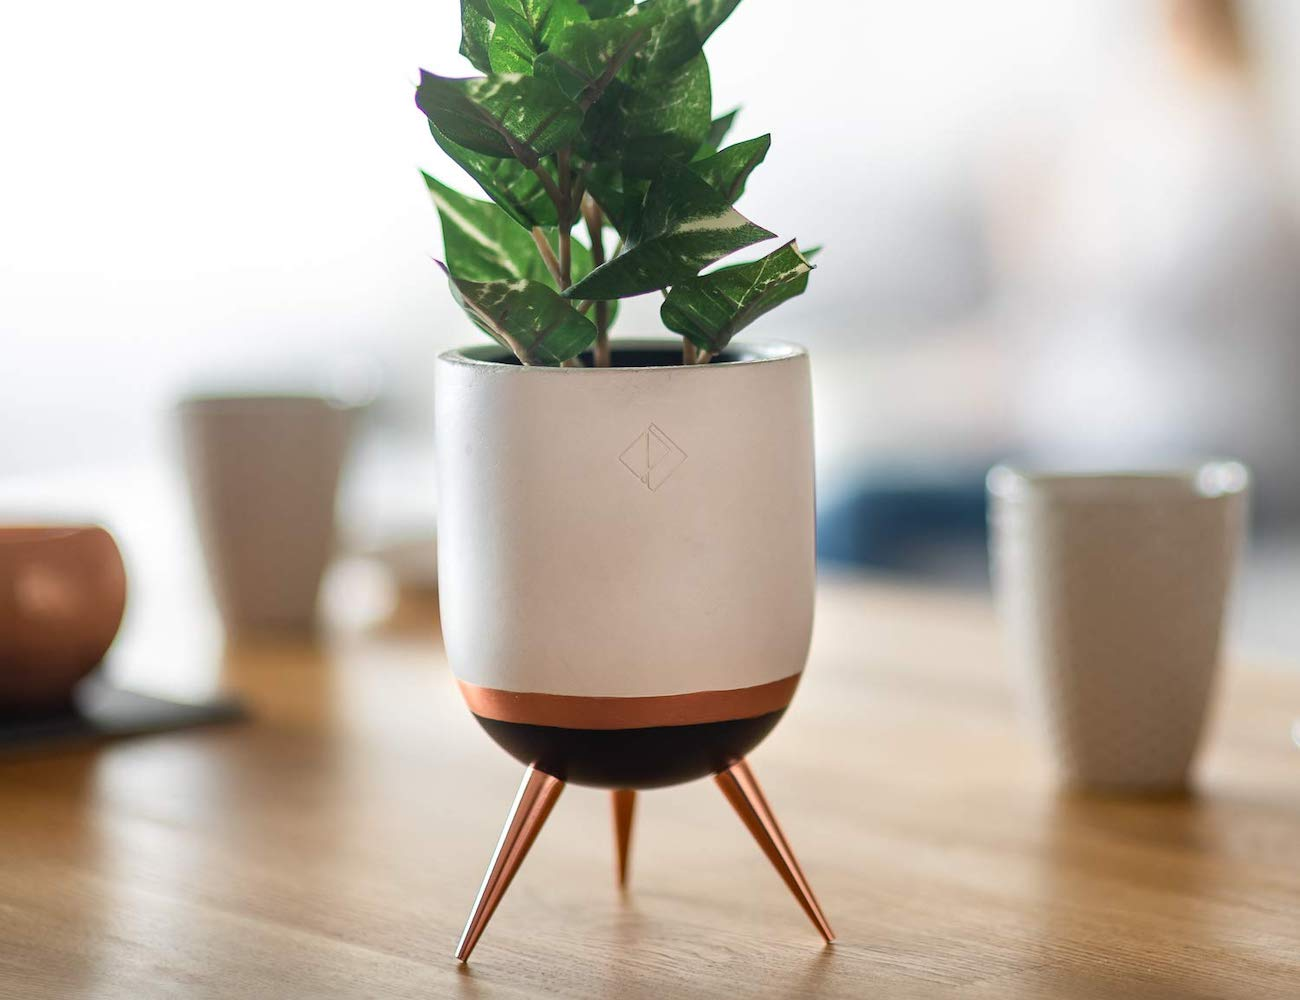 PERNER Tri-Legged Ceramic Flower Pot adds greenery to your space